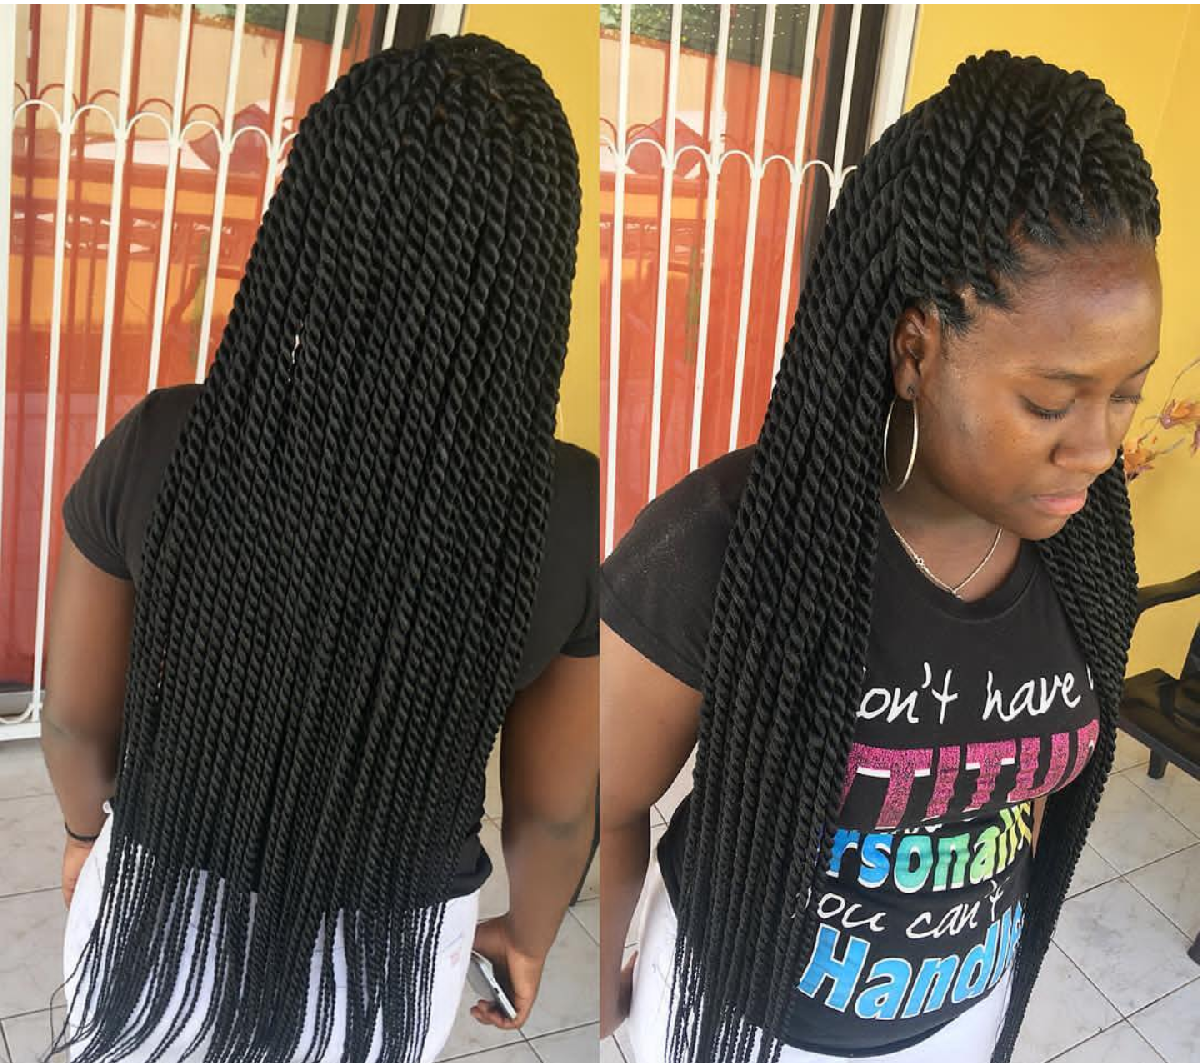 Popular Hairstyles In Jamaica: Natural Hairstyles And Braids For Sale In 26 Halfway Tree